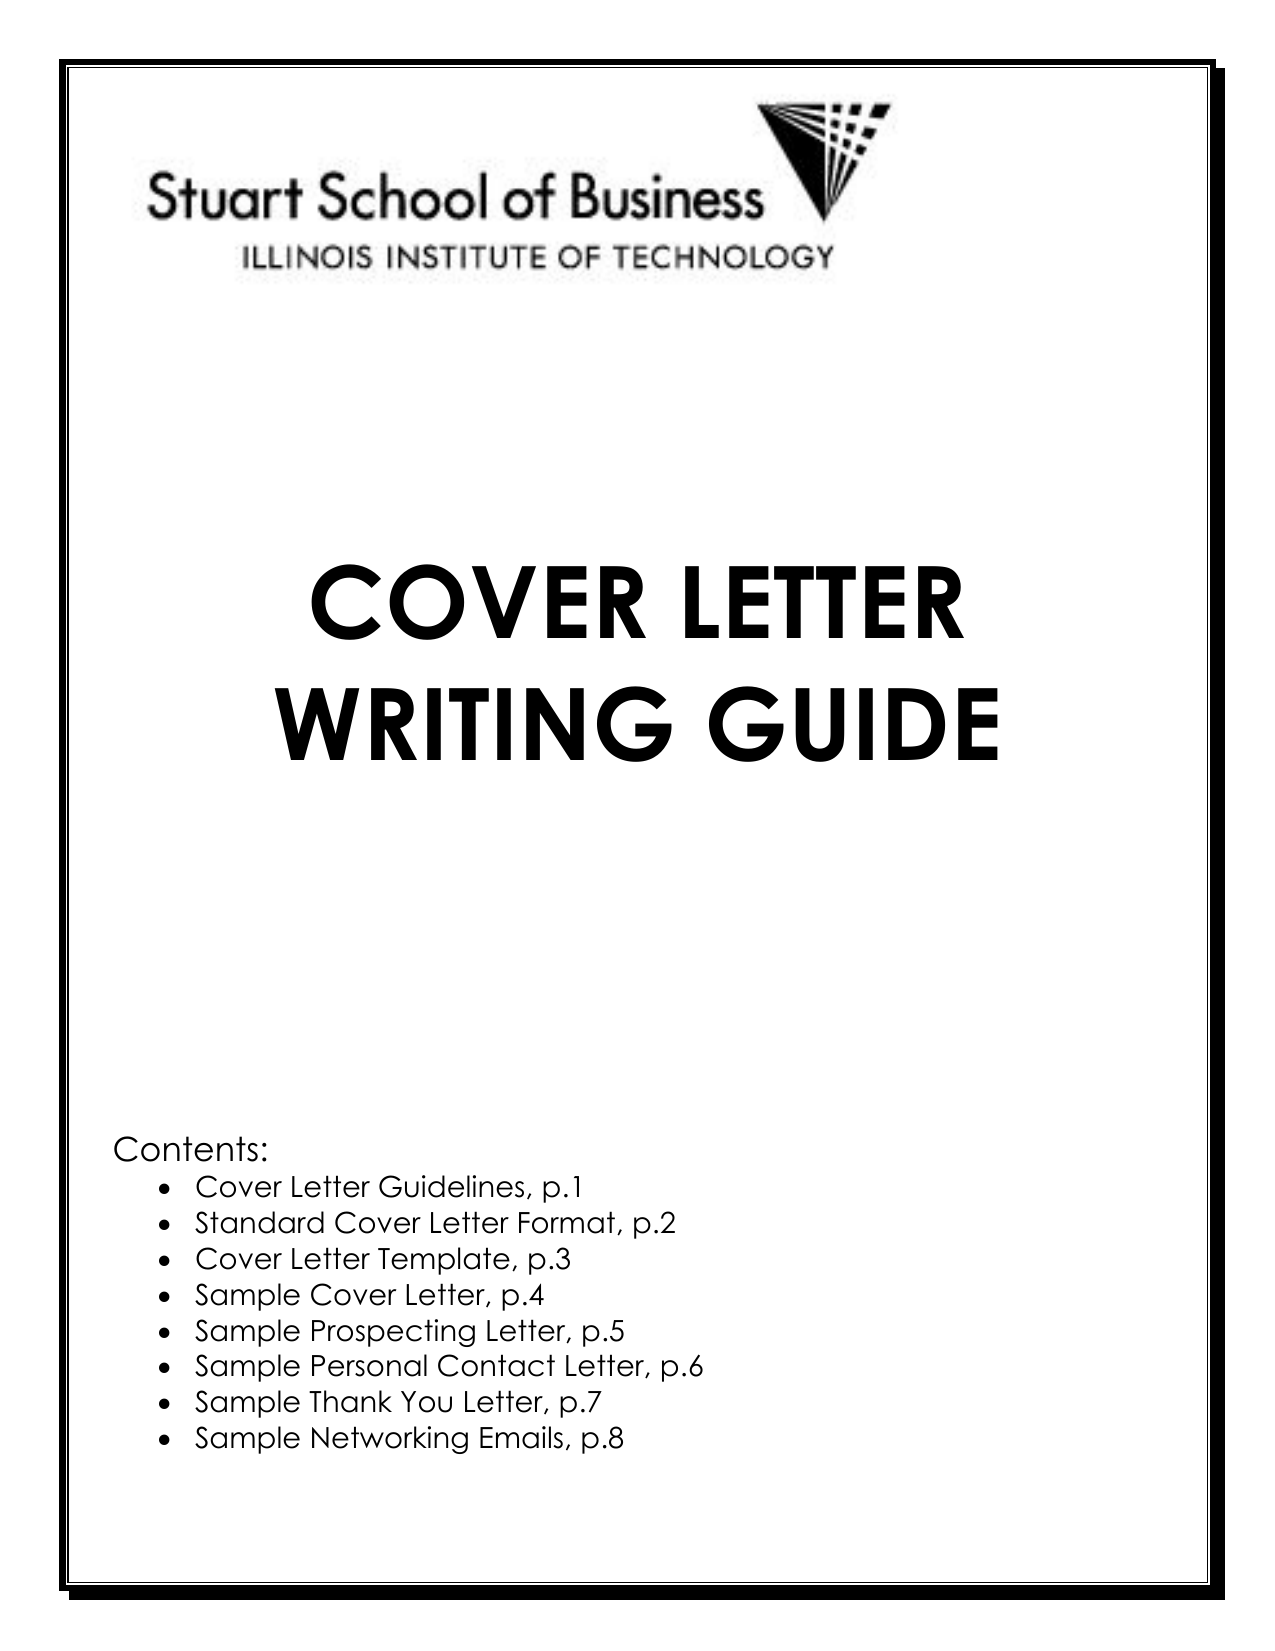 COVER LETTER WRITING GUIDE Contents O Cover Letter Guidelines P1 Standard Format P2 Template P3 Sample